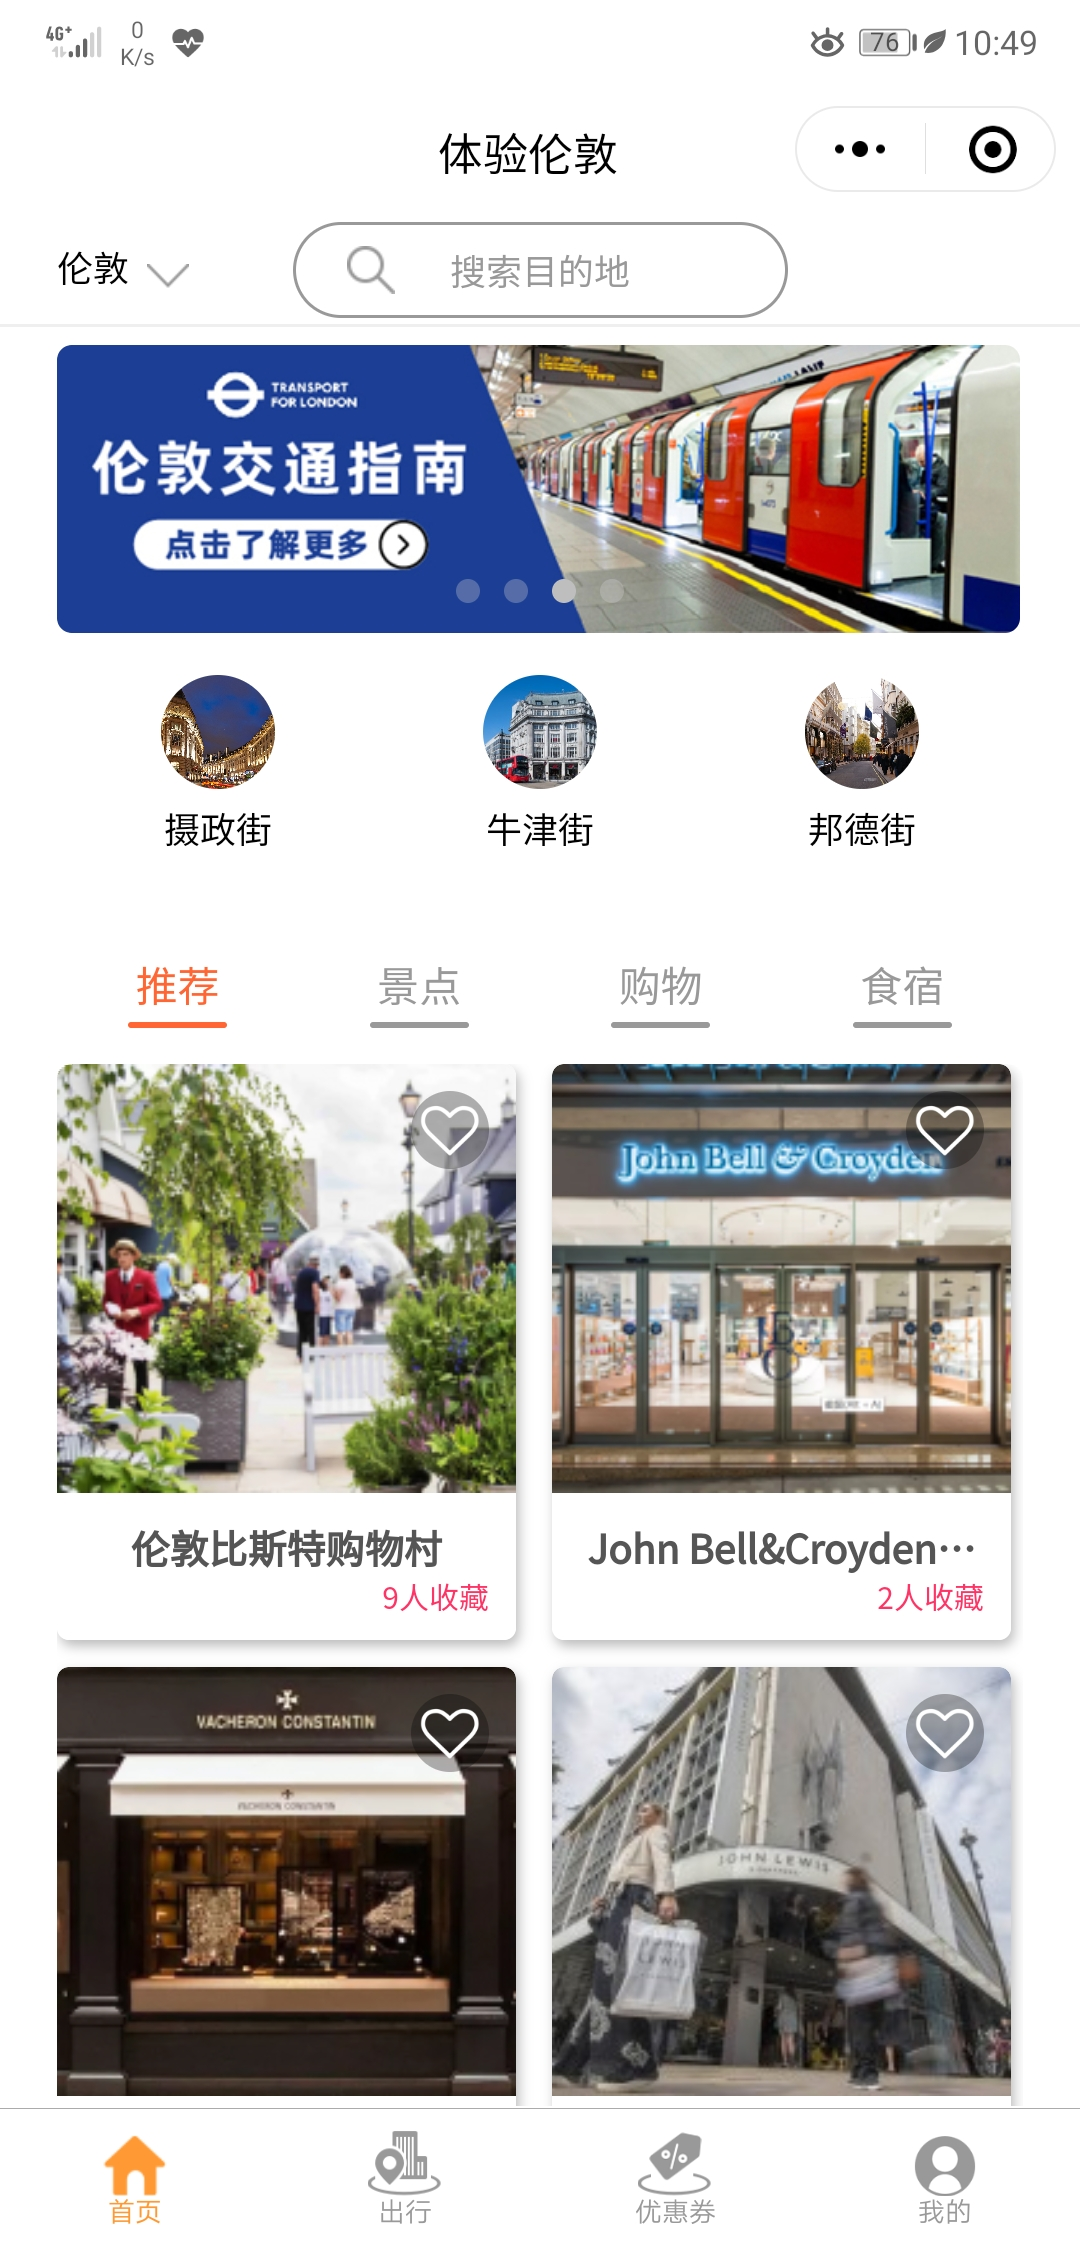 London WeChat Travel Experience